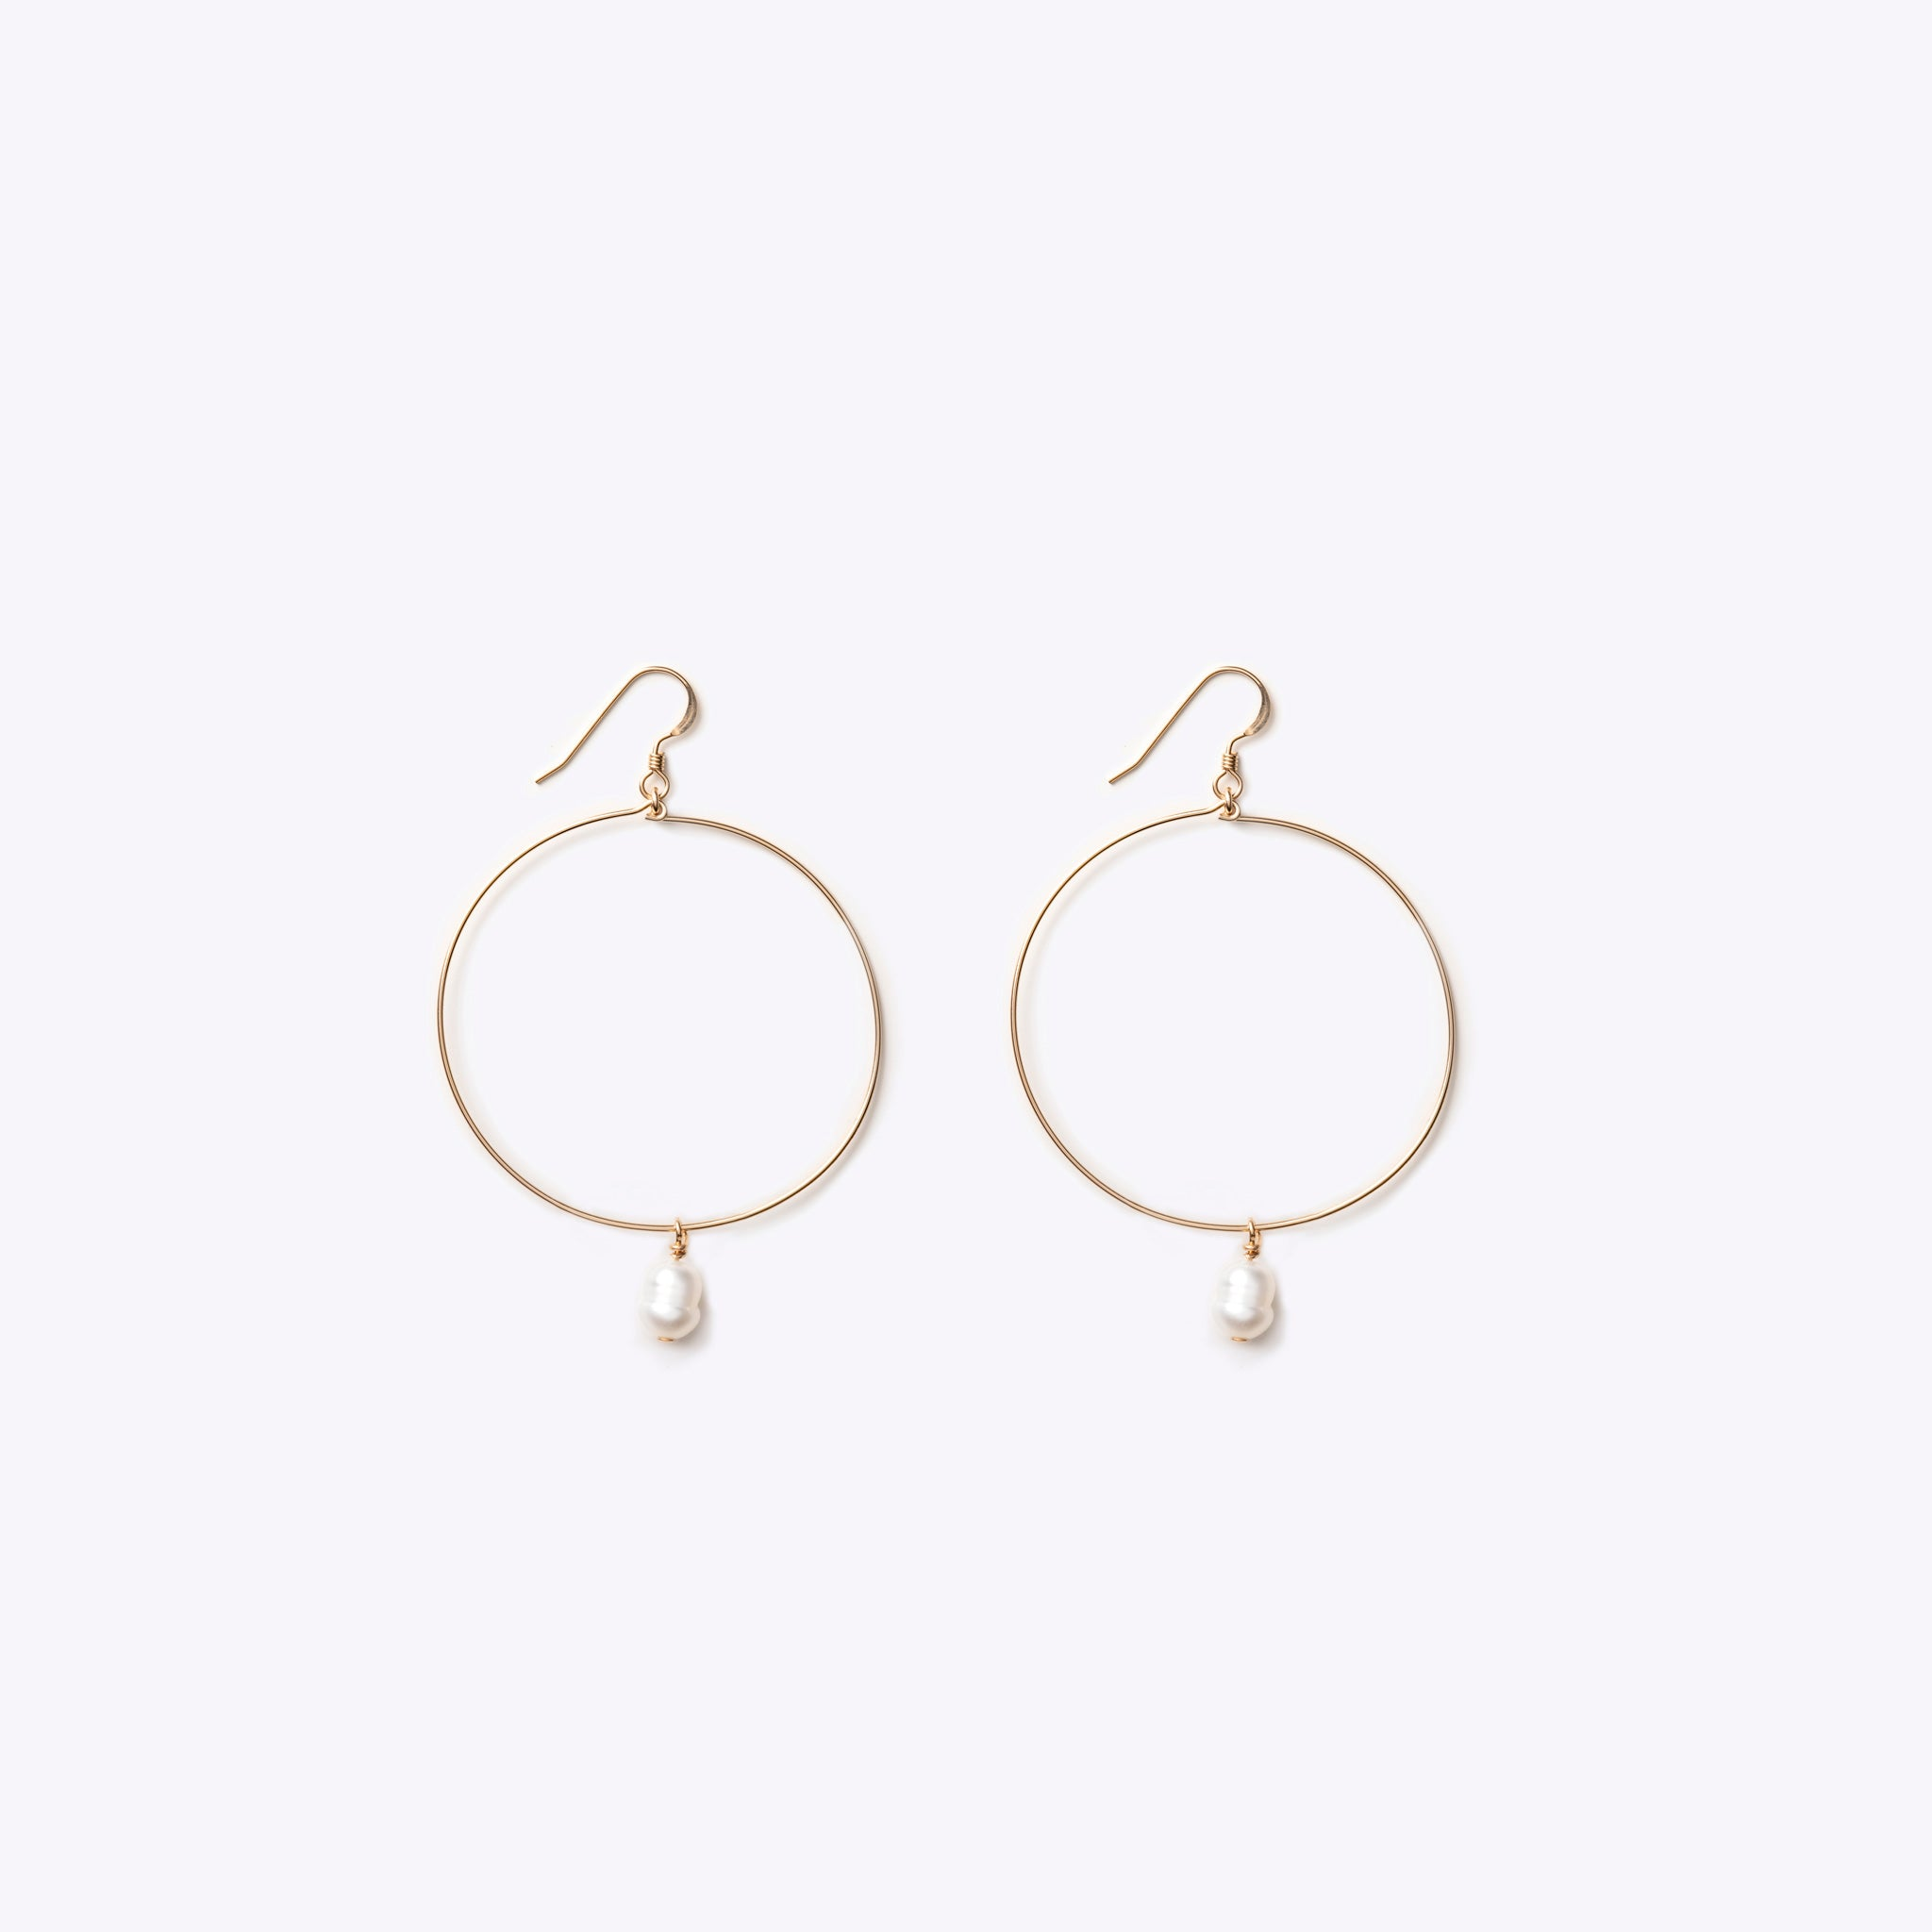 Wanderlust Life pearl jewellery collection. Large gold pearl hoop earrings, Wedding jewellery handmade in the UK.